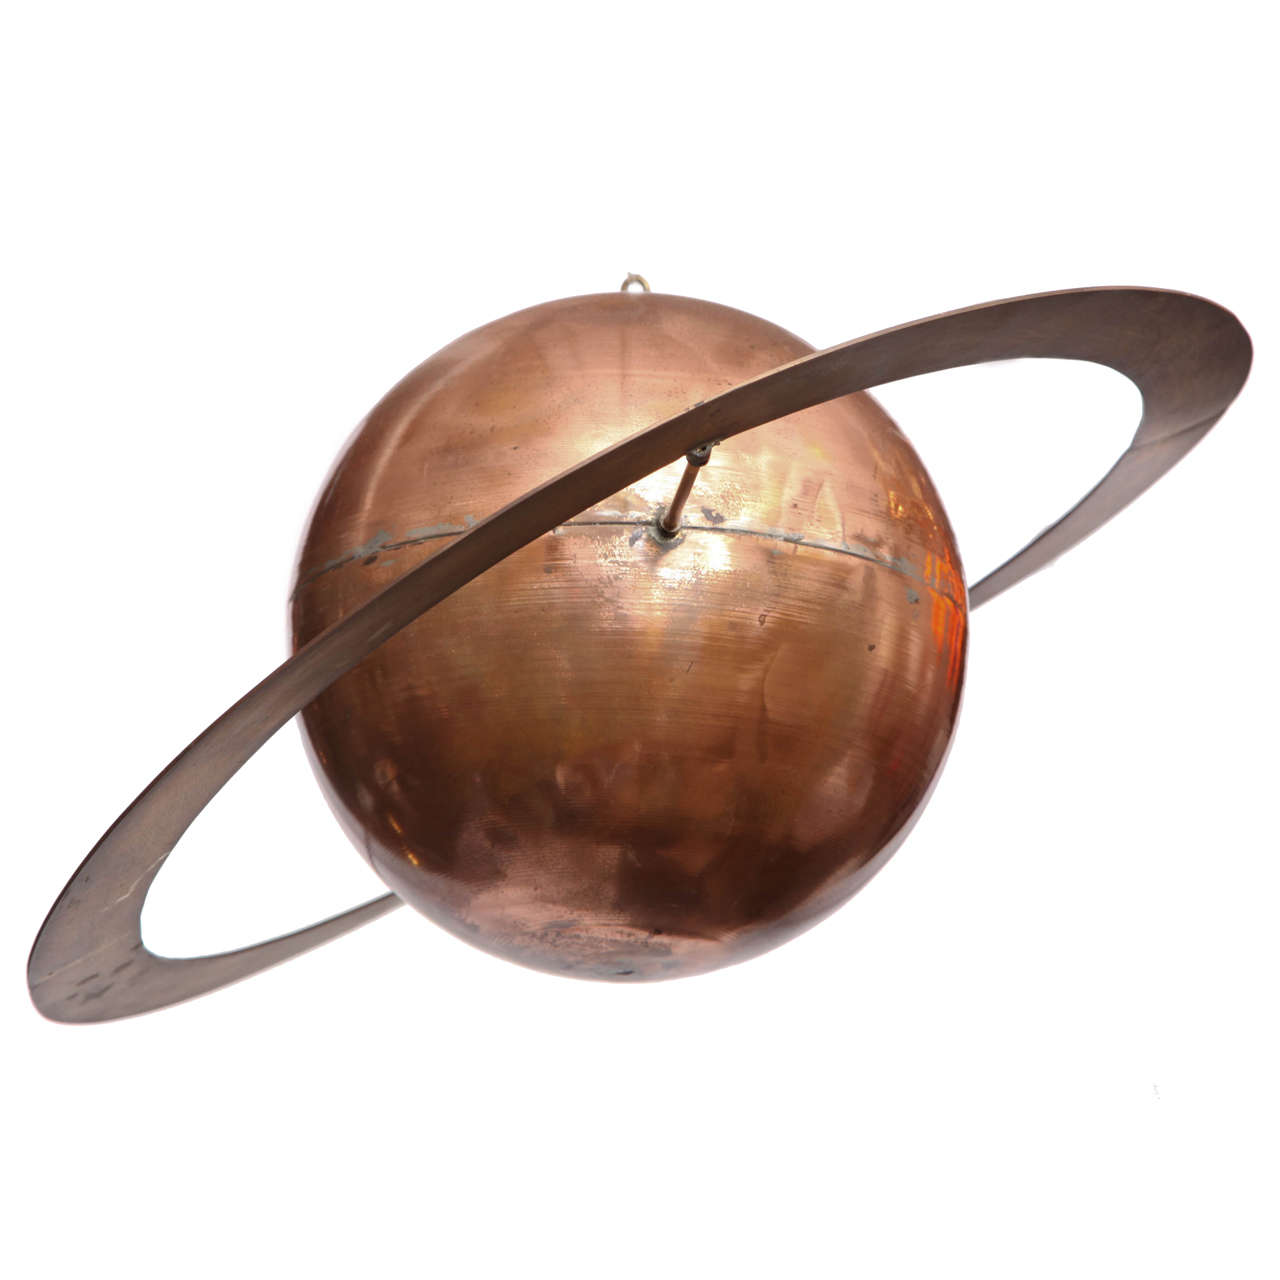 Modernist Brass and Copper Saturn Hanging Sculpture by Charles Lamb For Sale